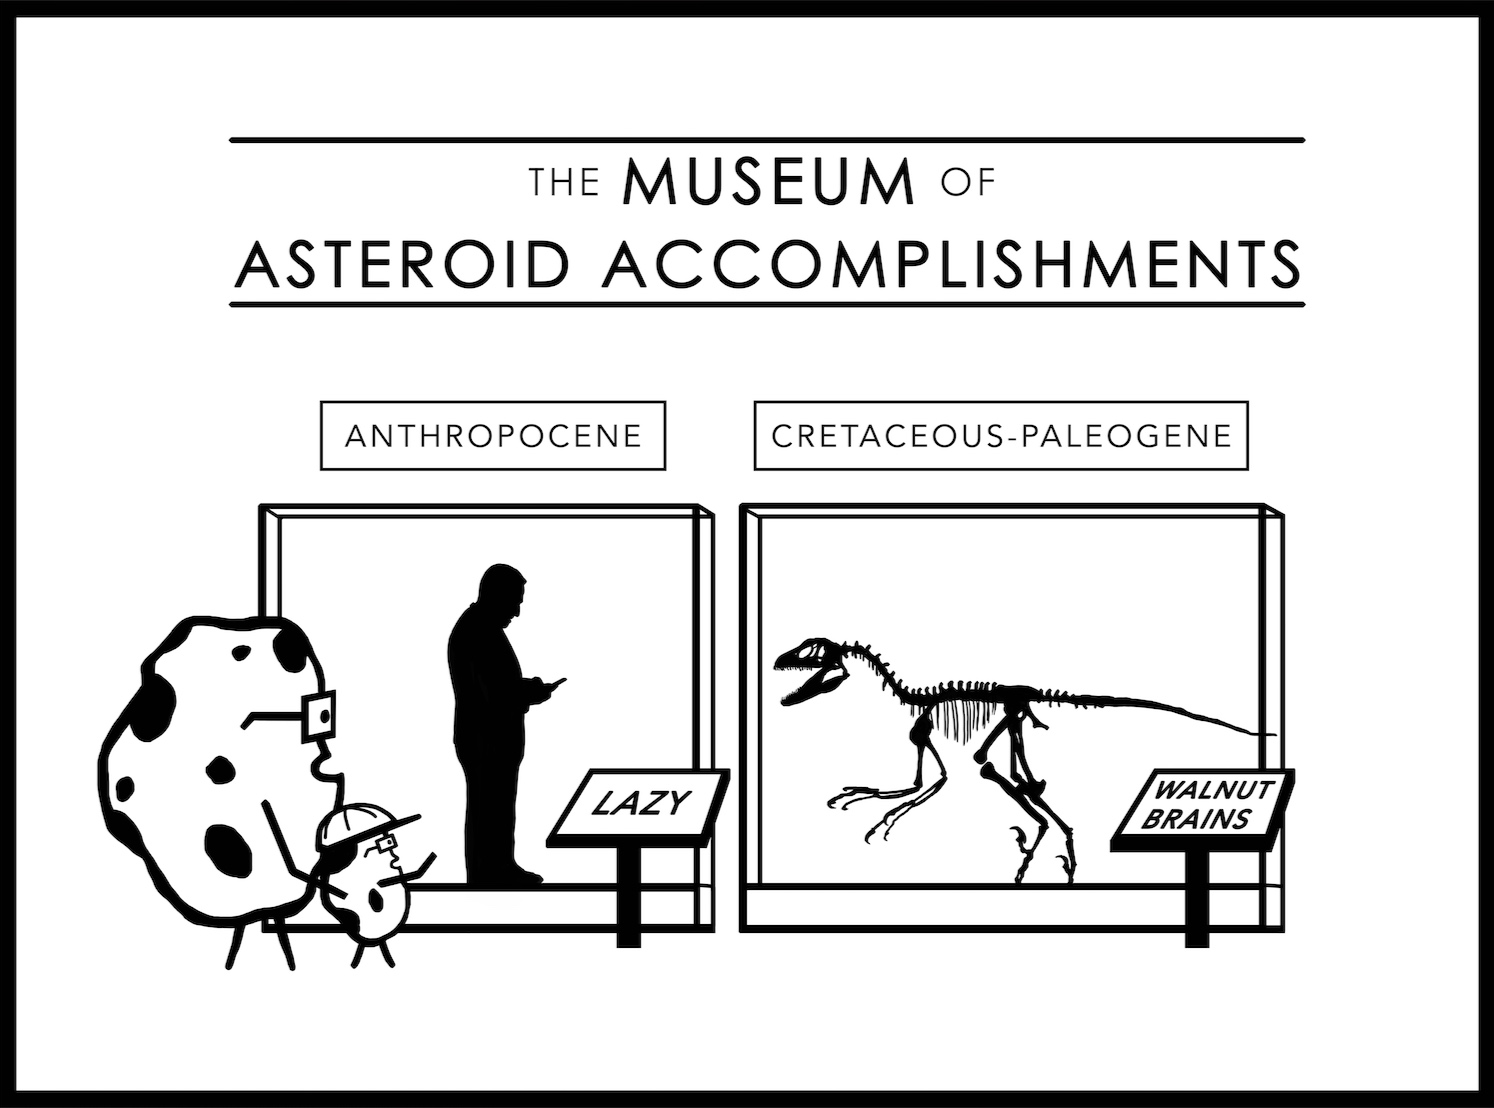 The Museum of Asteroid Accomplishments